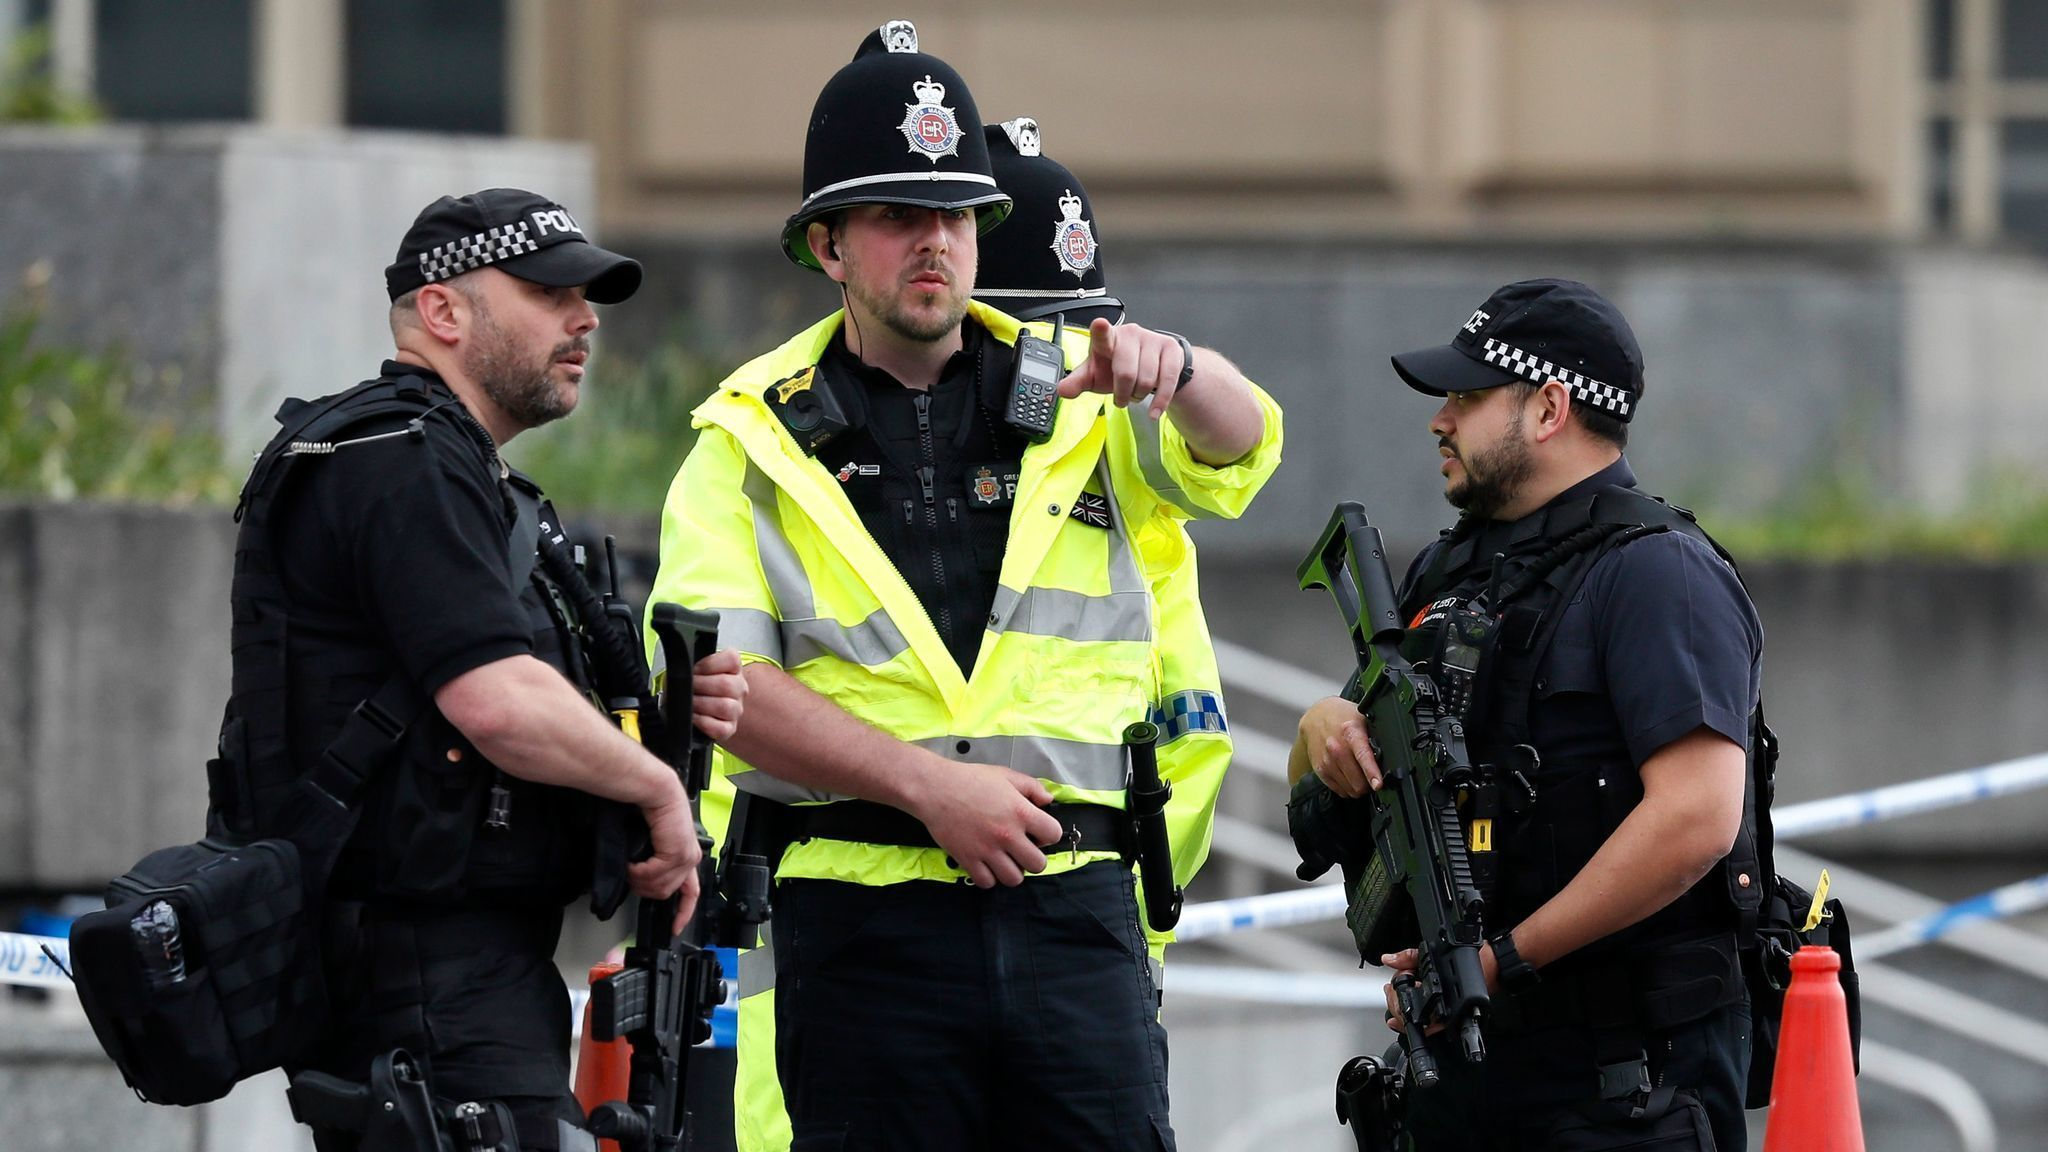 To avoid a Manchester-type bombing on American soil, integrate Muslims